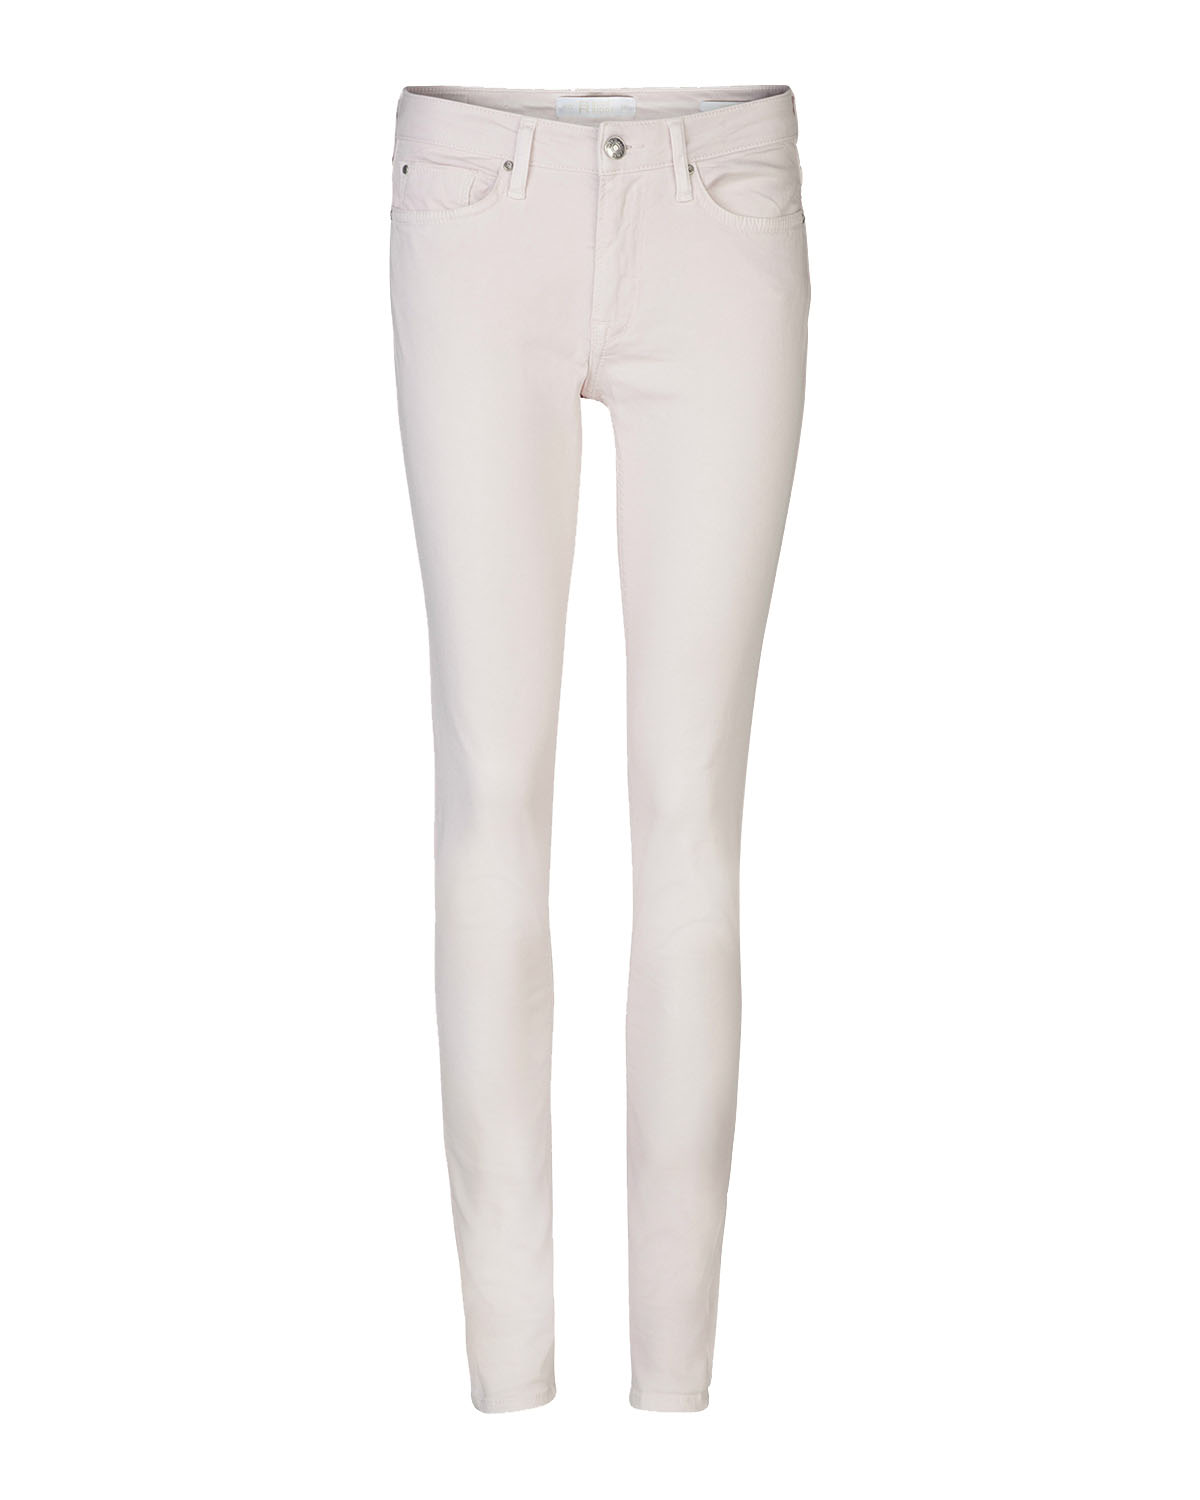 Dames low rise skinny jeans